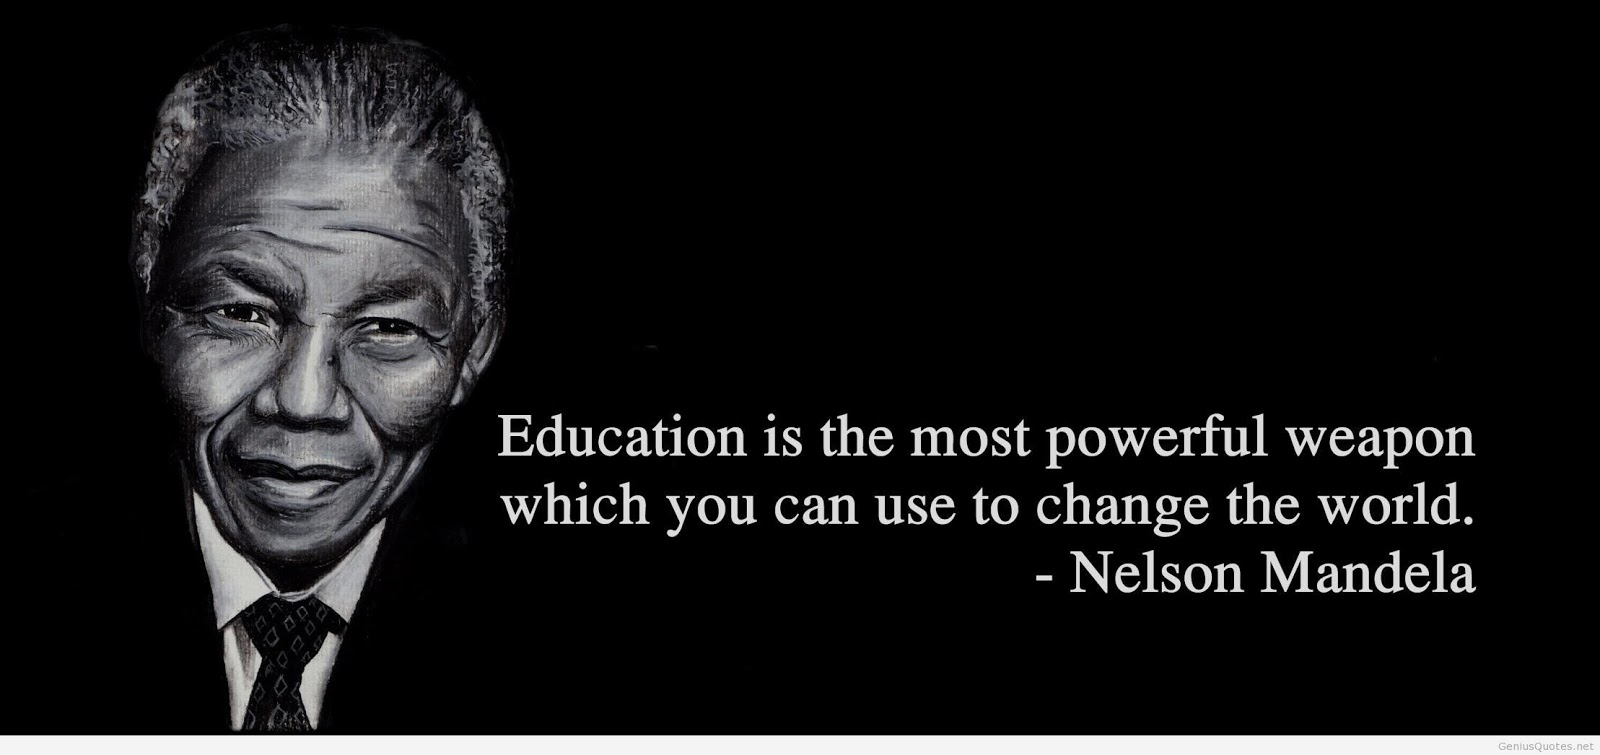 education vs non education These education categories reflect only the highest level of educational  attainment they do not take into account completion of training.